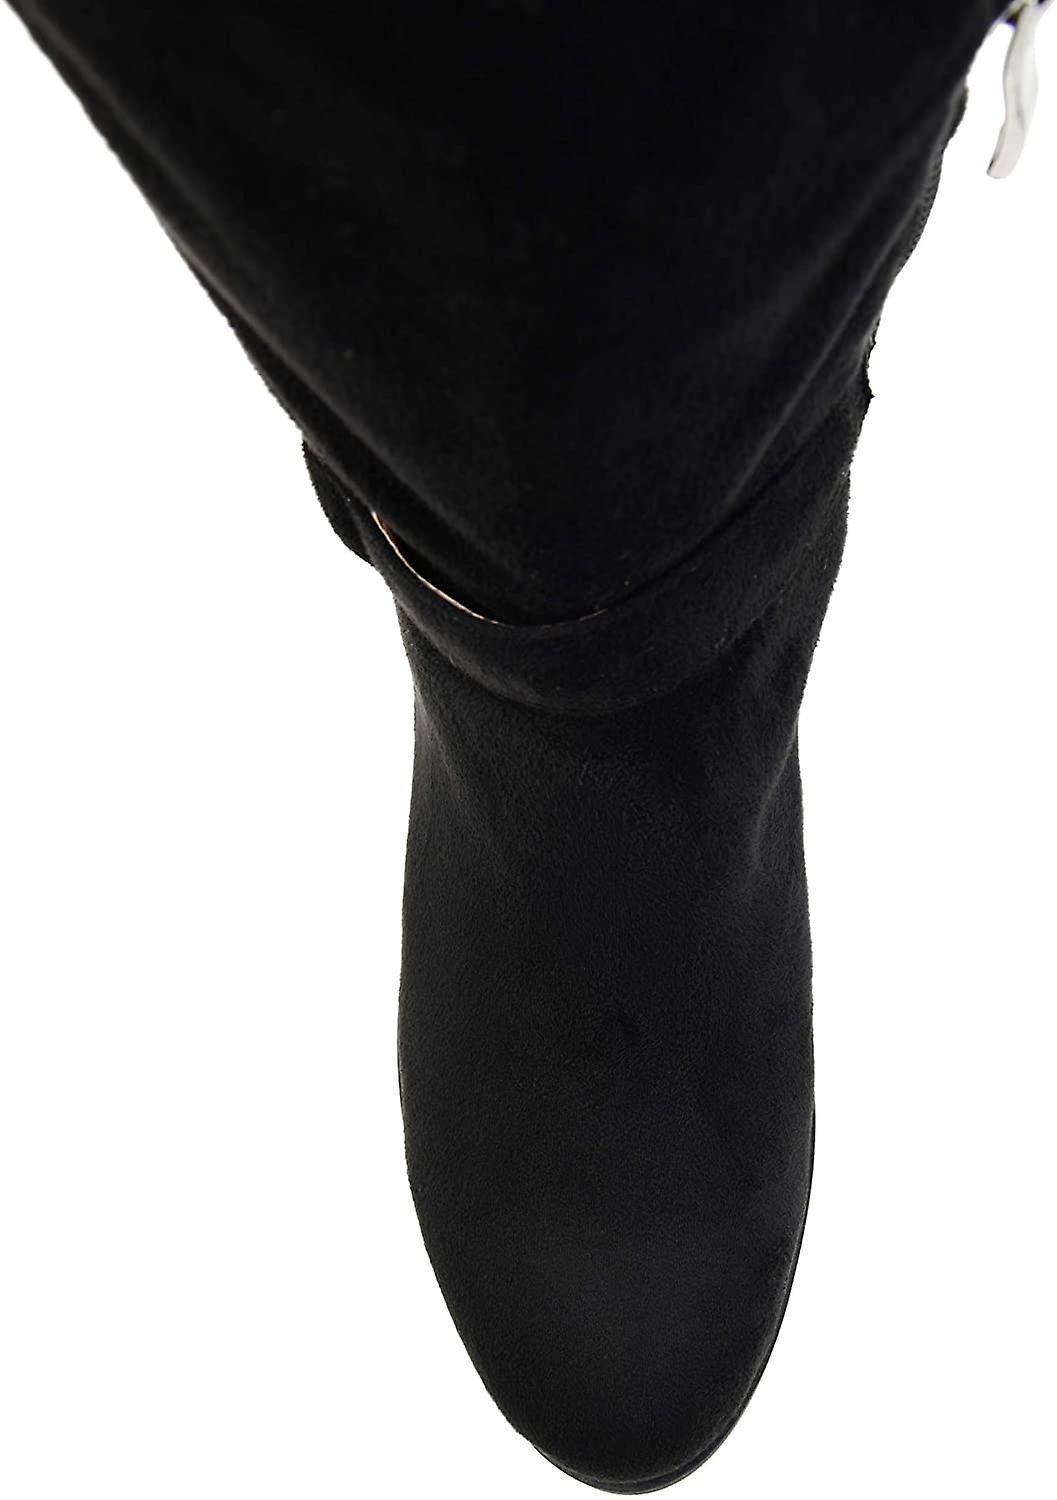 Brinley Co. Comfort Womens Classic Riding Boot Black, 9 Extra Wide Calf US